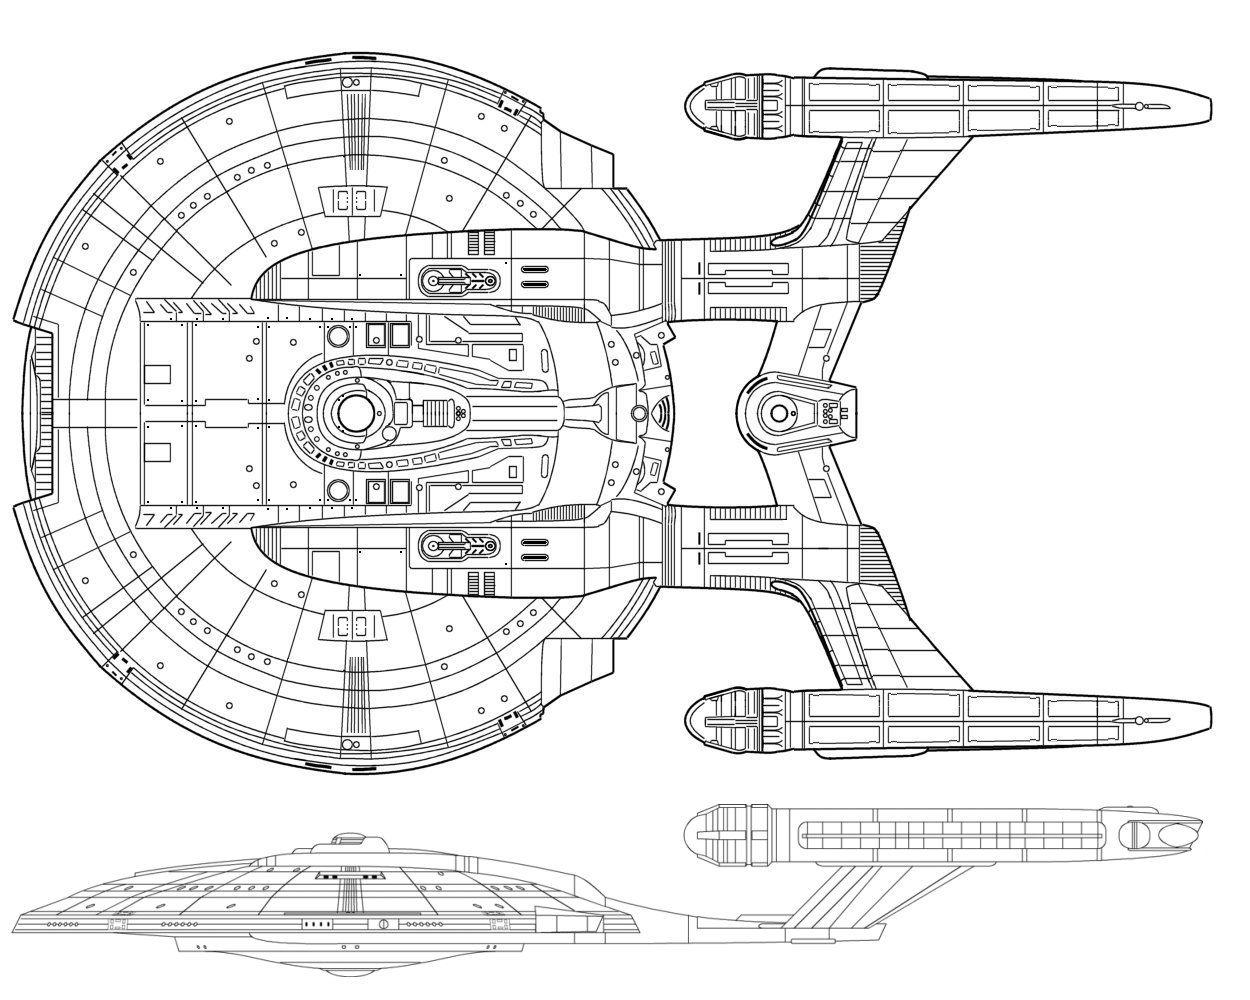 Black and white schematic of Columbia-class starship; U.S